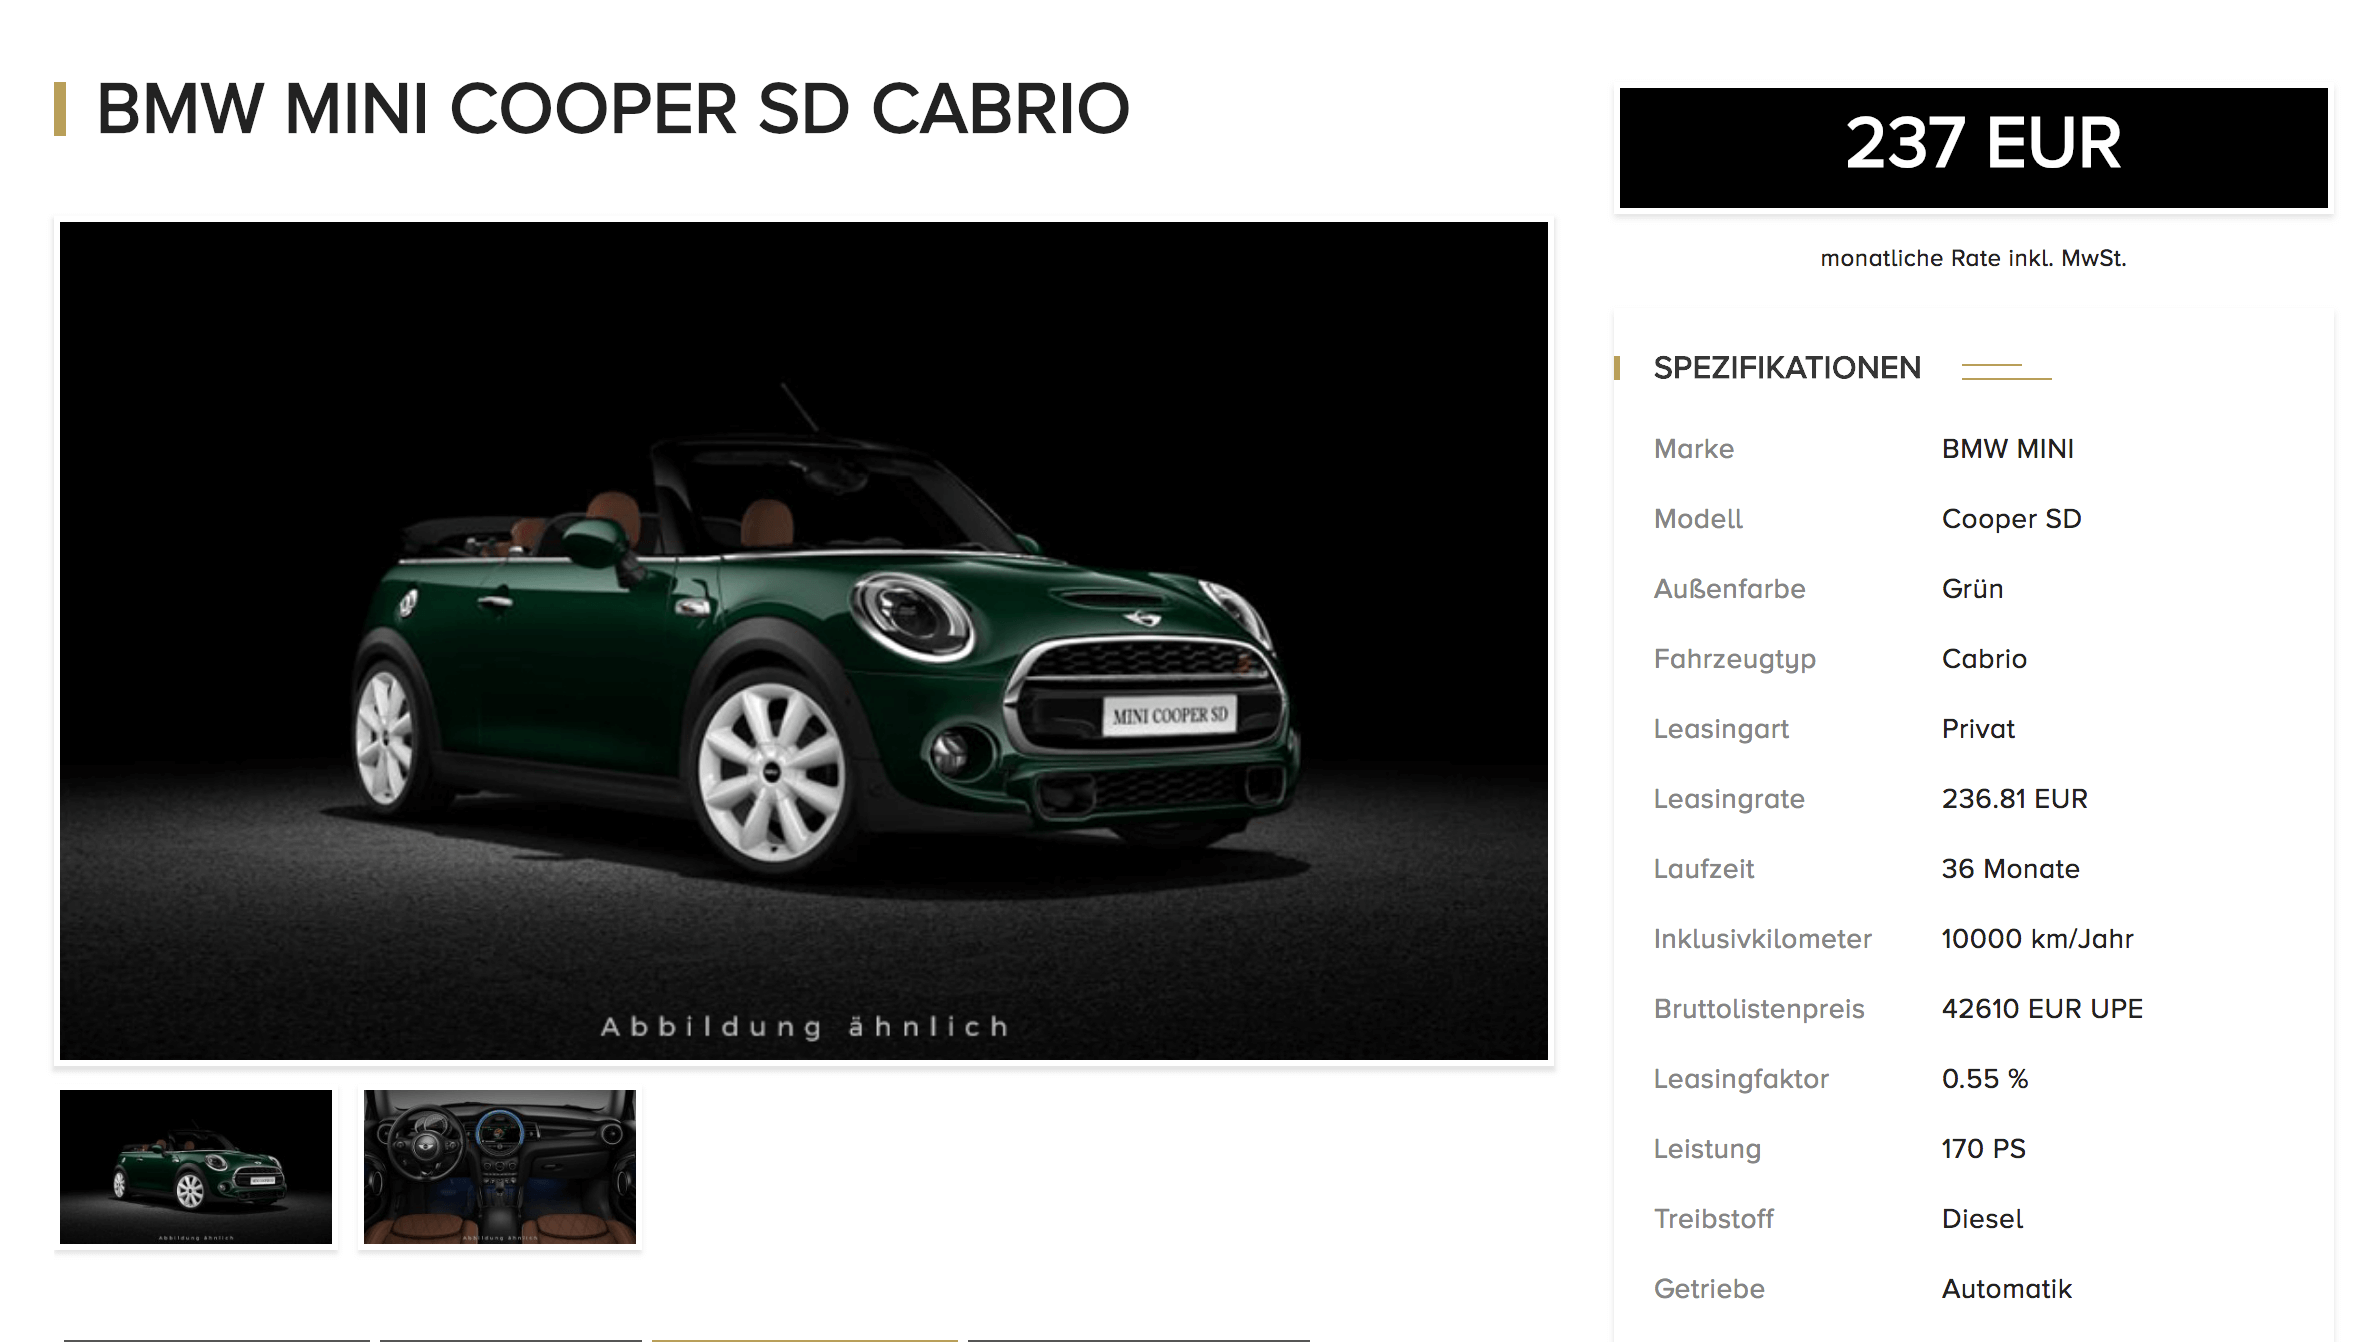 mini cooper sd cabrio leasing f r 237 euro im monat brutto jahreswagen schon weg. Black Bedroom Furniture Sets. Home Design Ideas